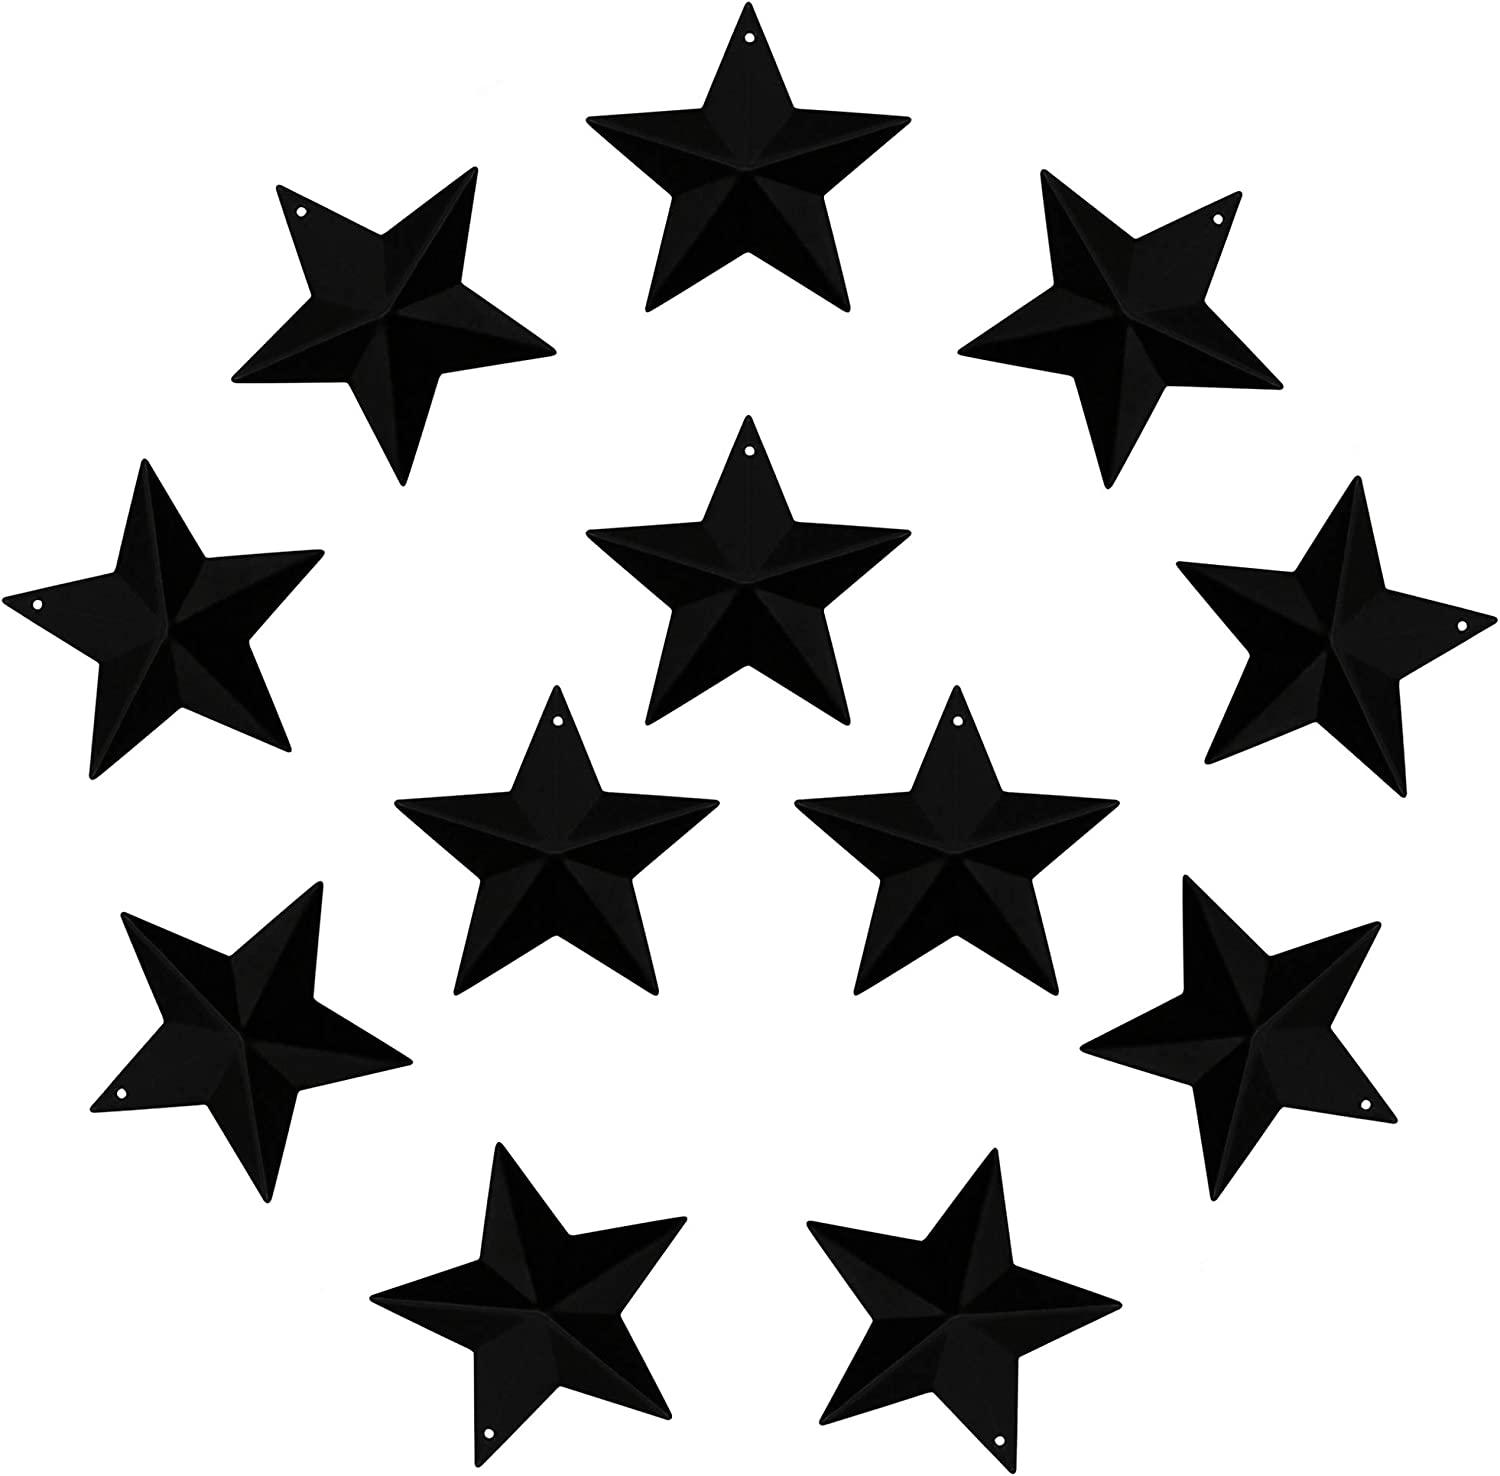 CVHOMEDECO. Country Rustic Primitive Vintage Gifts Black Small Metal Barn Star Wall/Door Decor, 2-1/2 Inch, Set of 12.